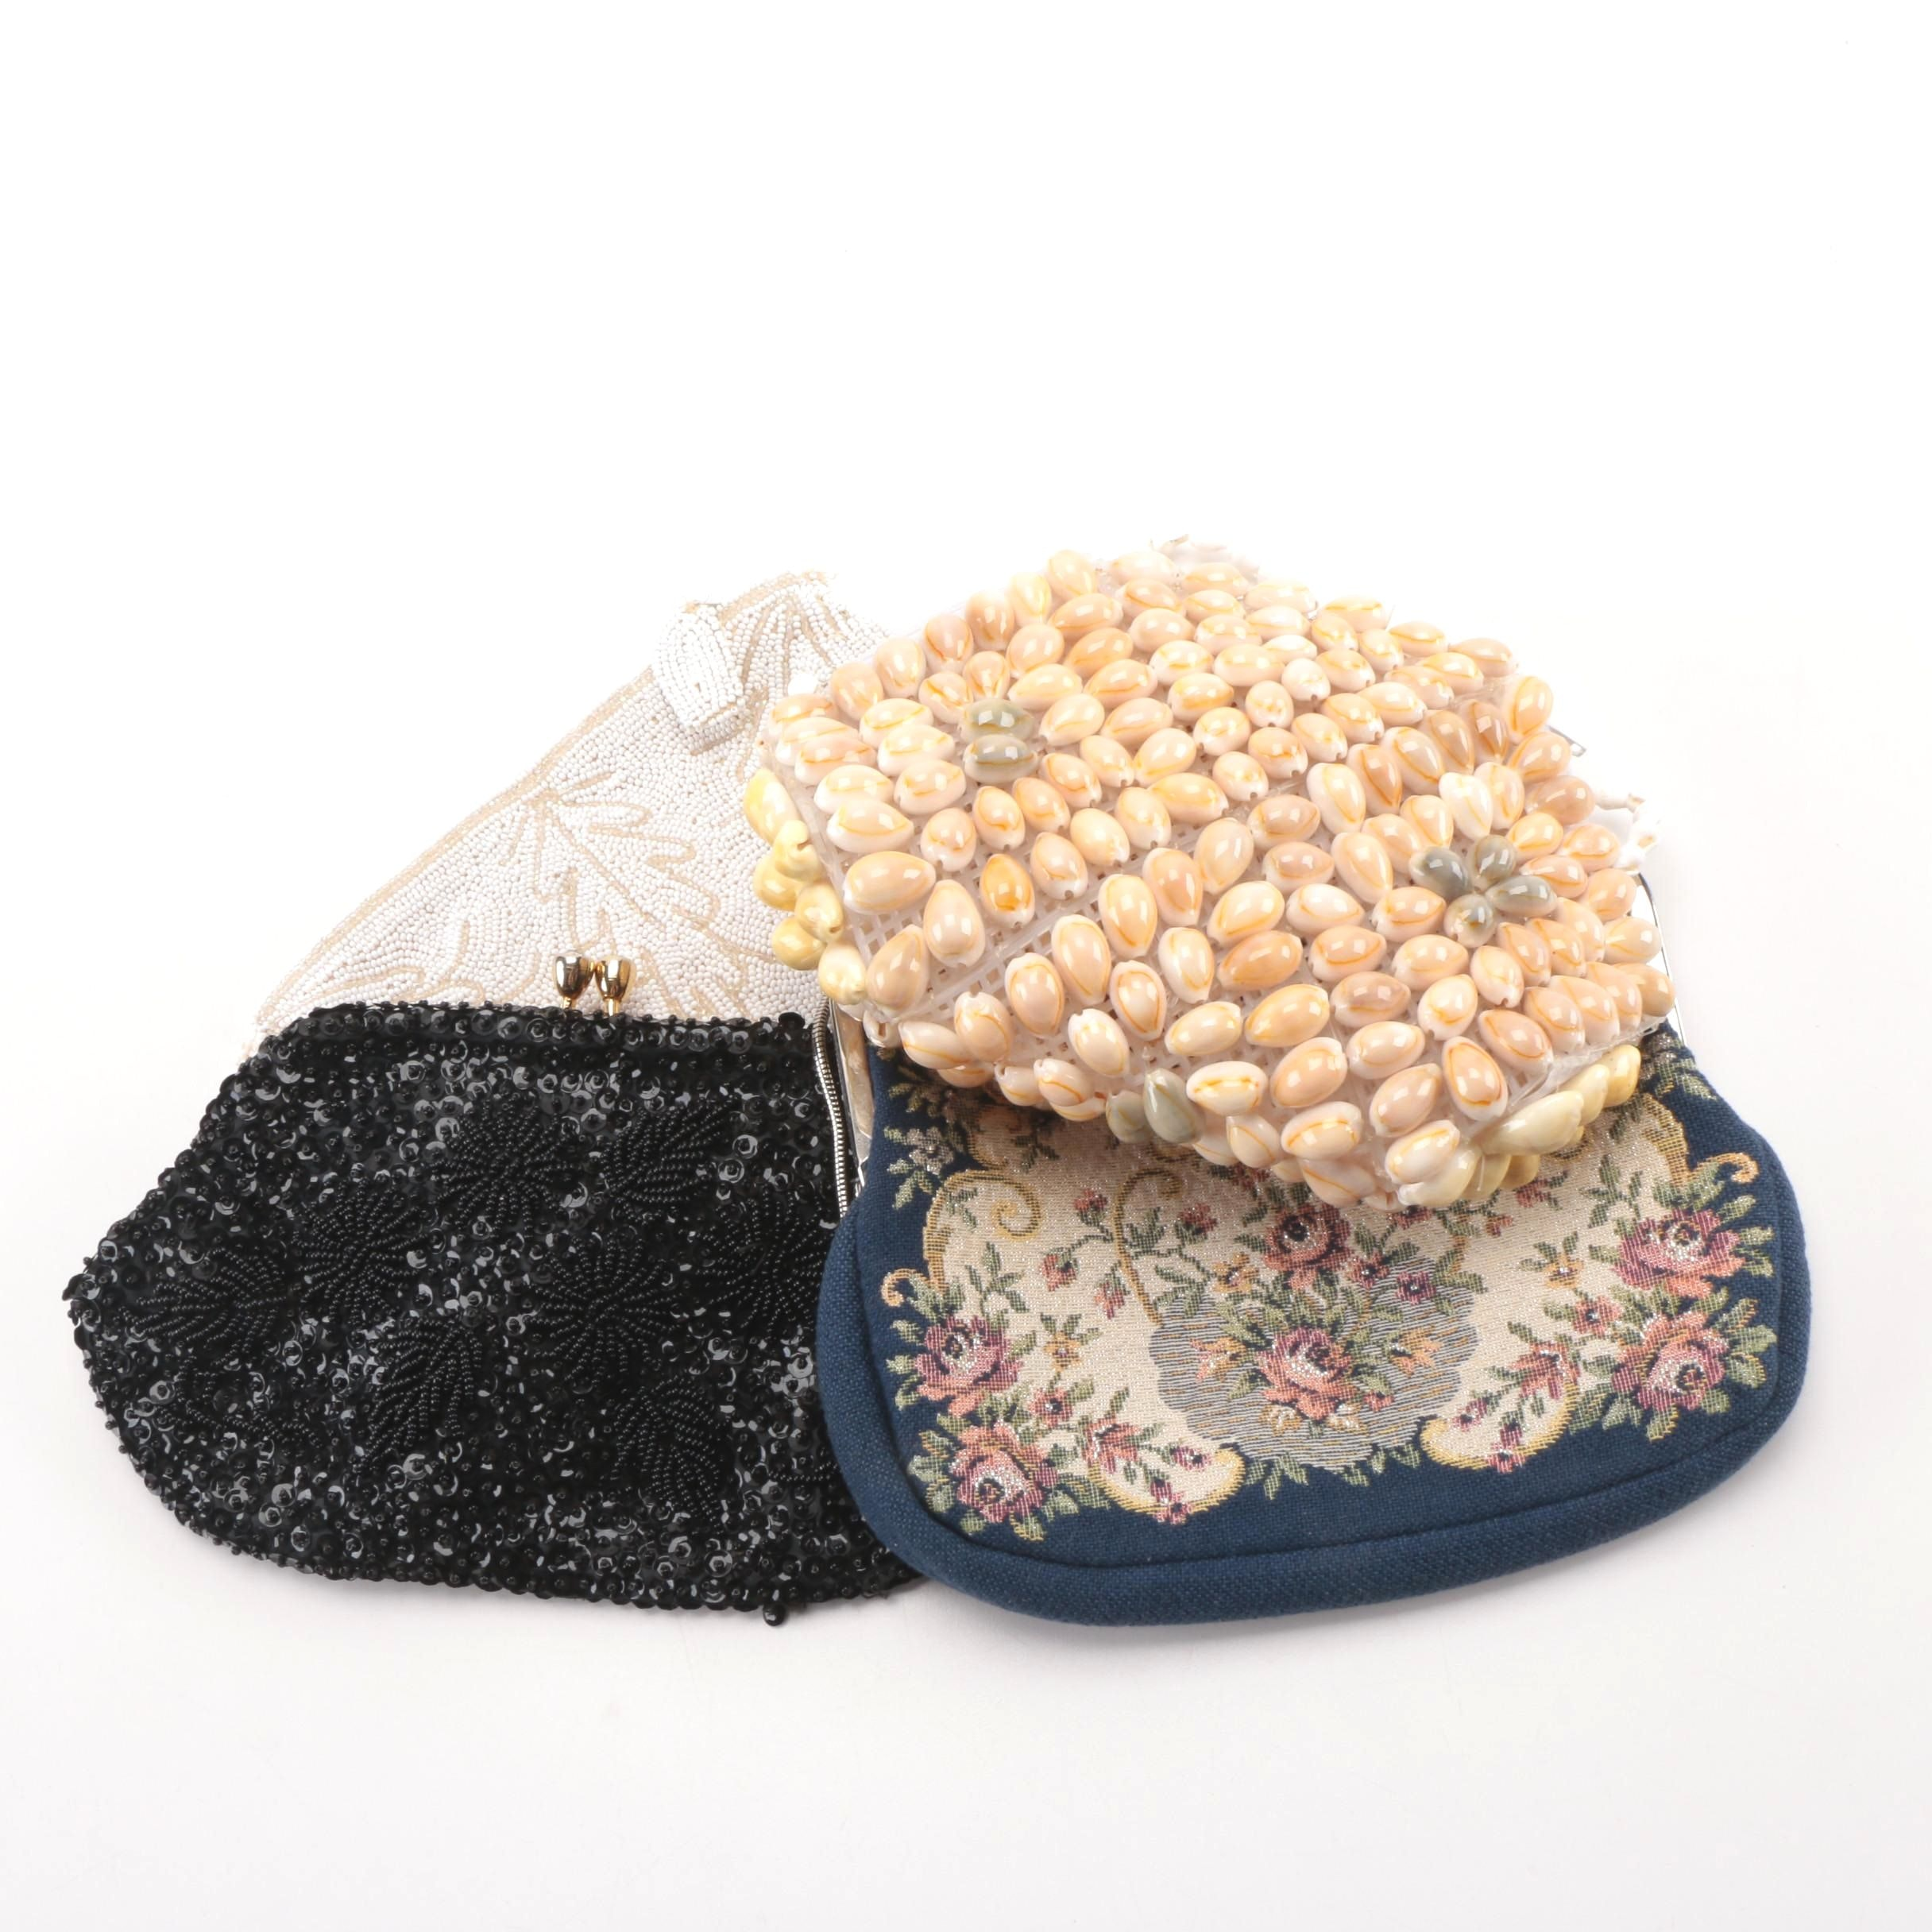 Vintage Clutches and Handbags Including Needlepoint